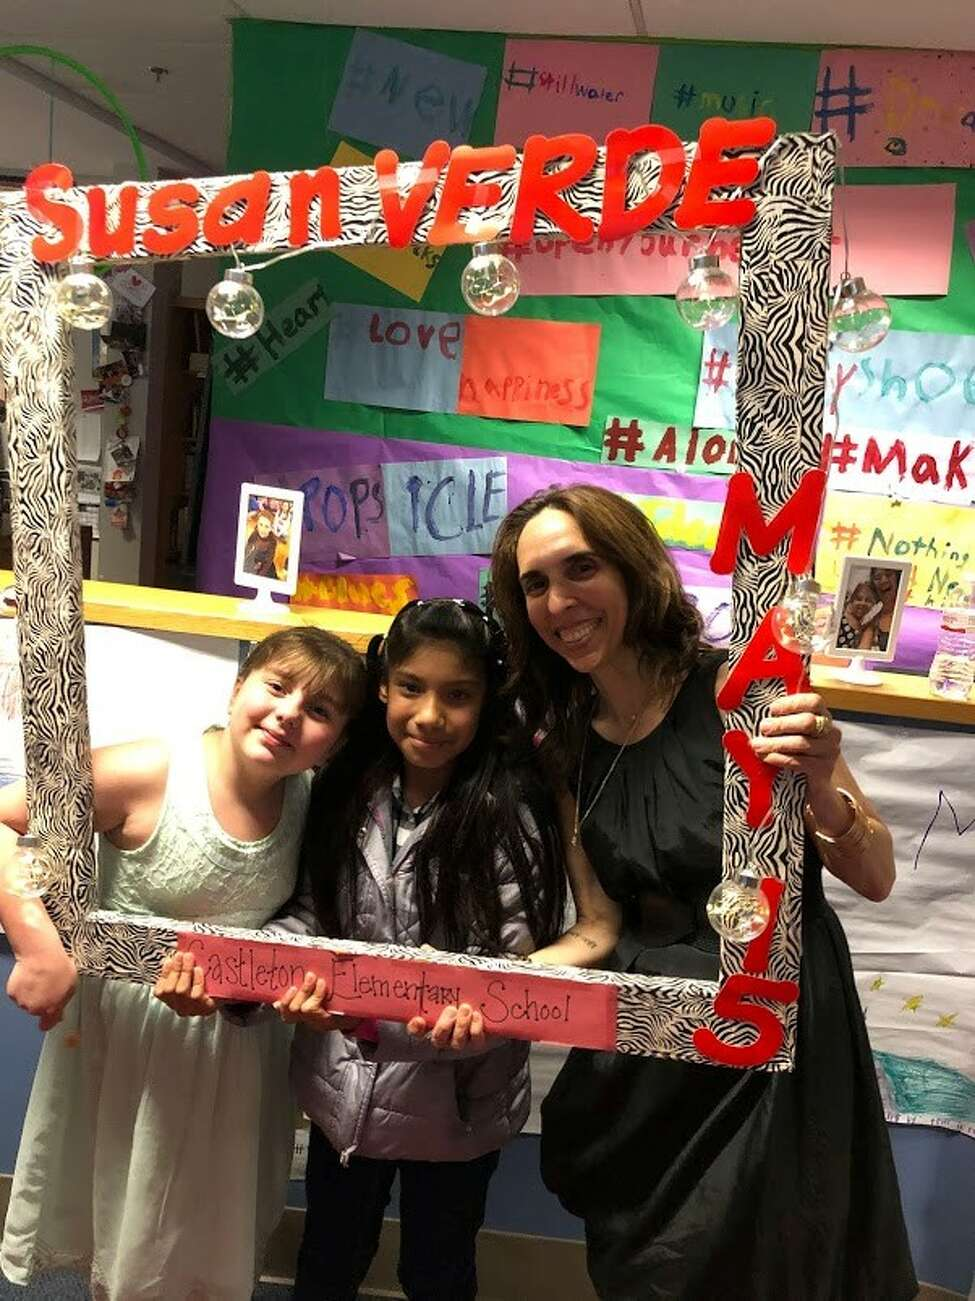 Ana Cruz-Cruz and Olivia Hoch, students at Castleton Elementary School, pose with children's author Susan Verde at the annual